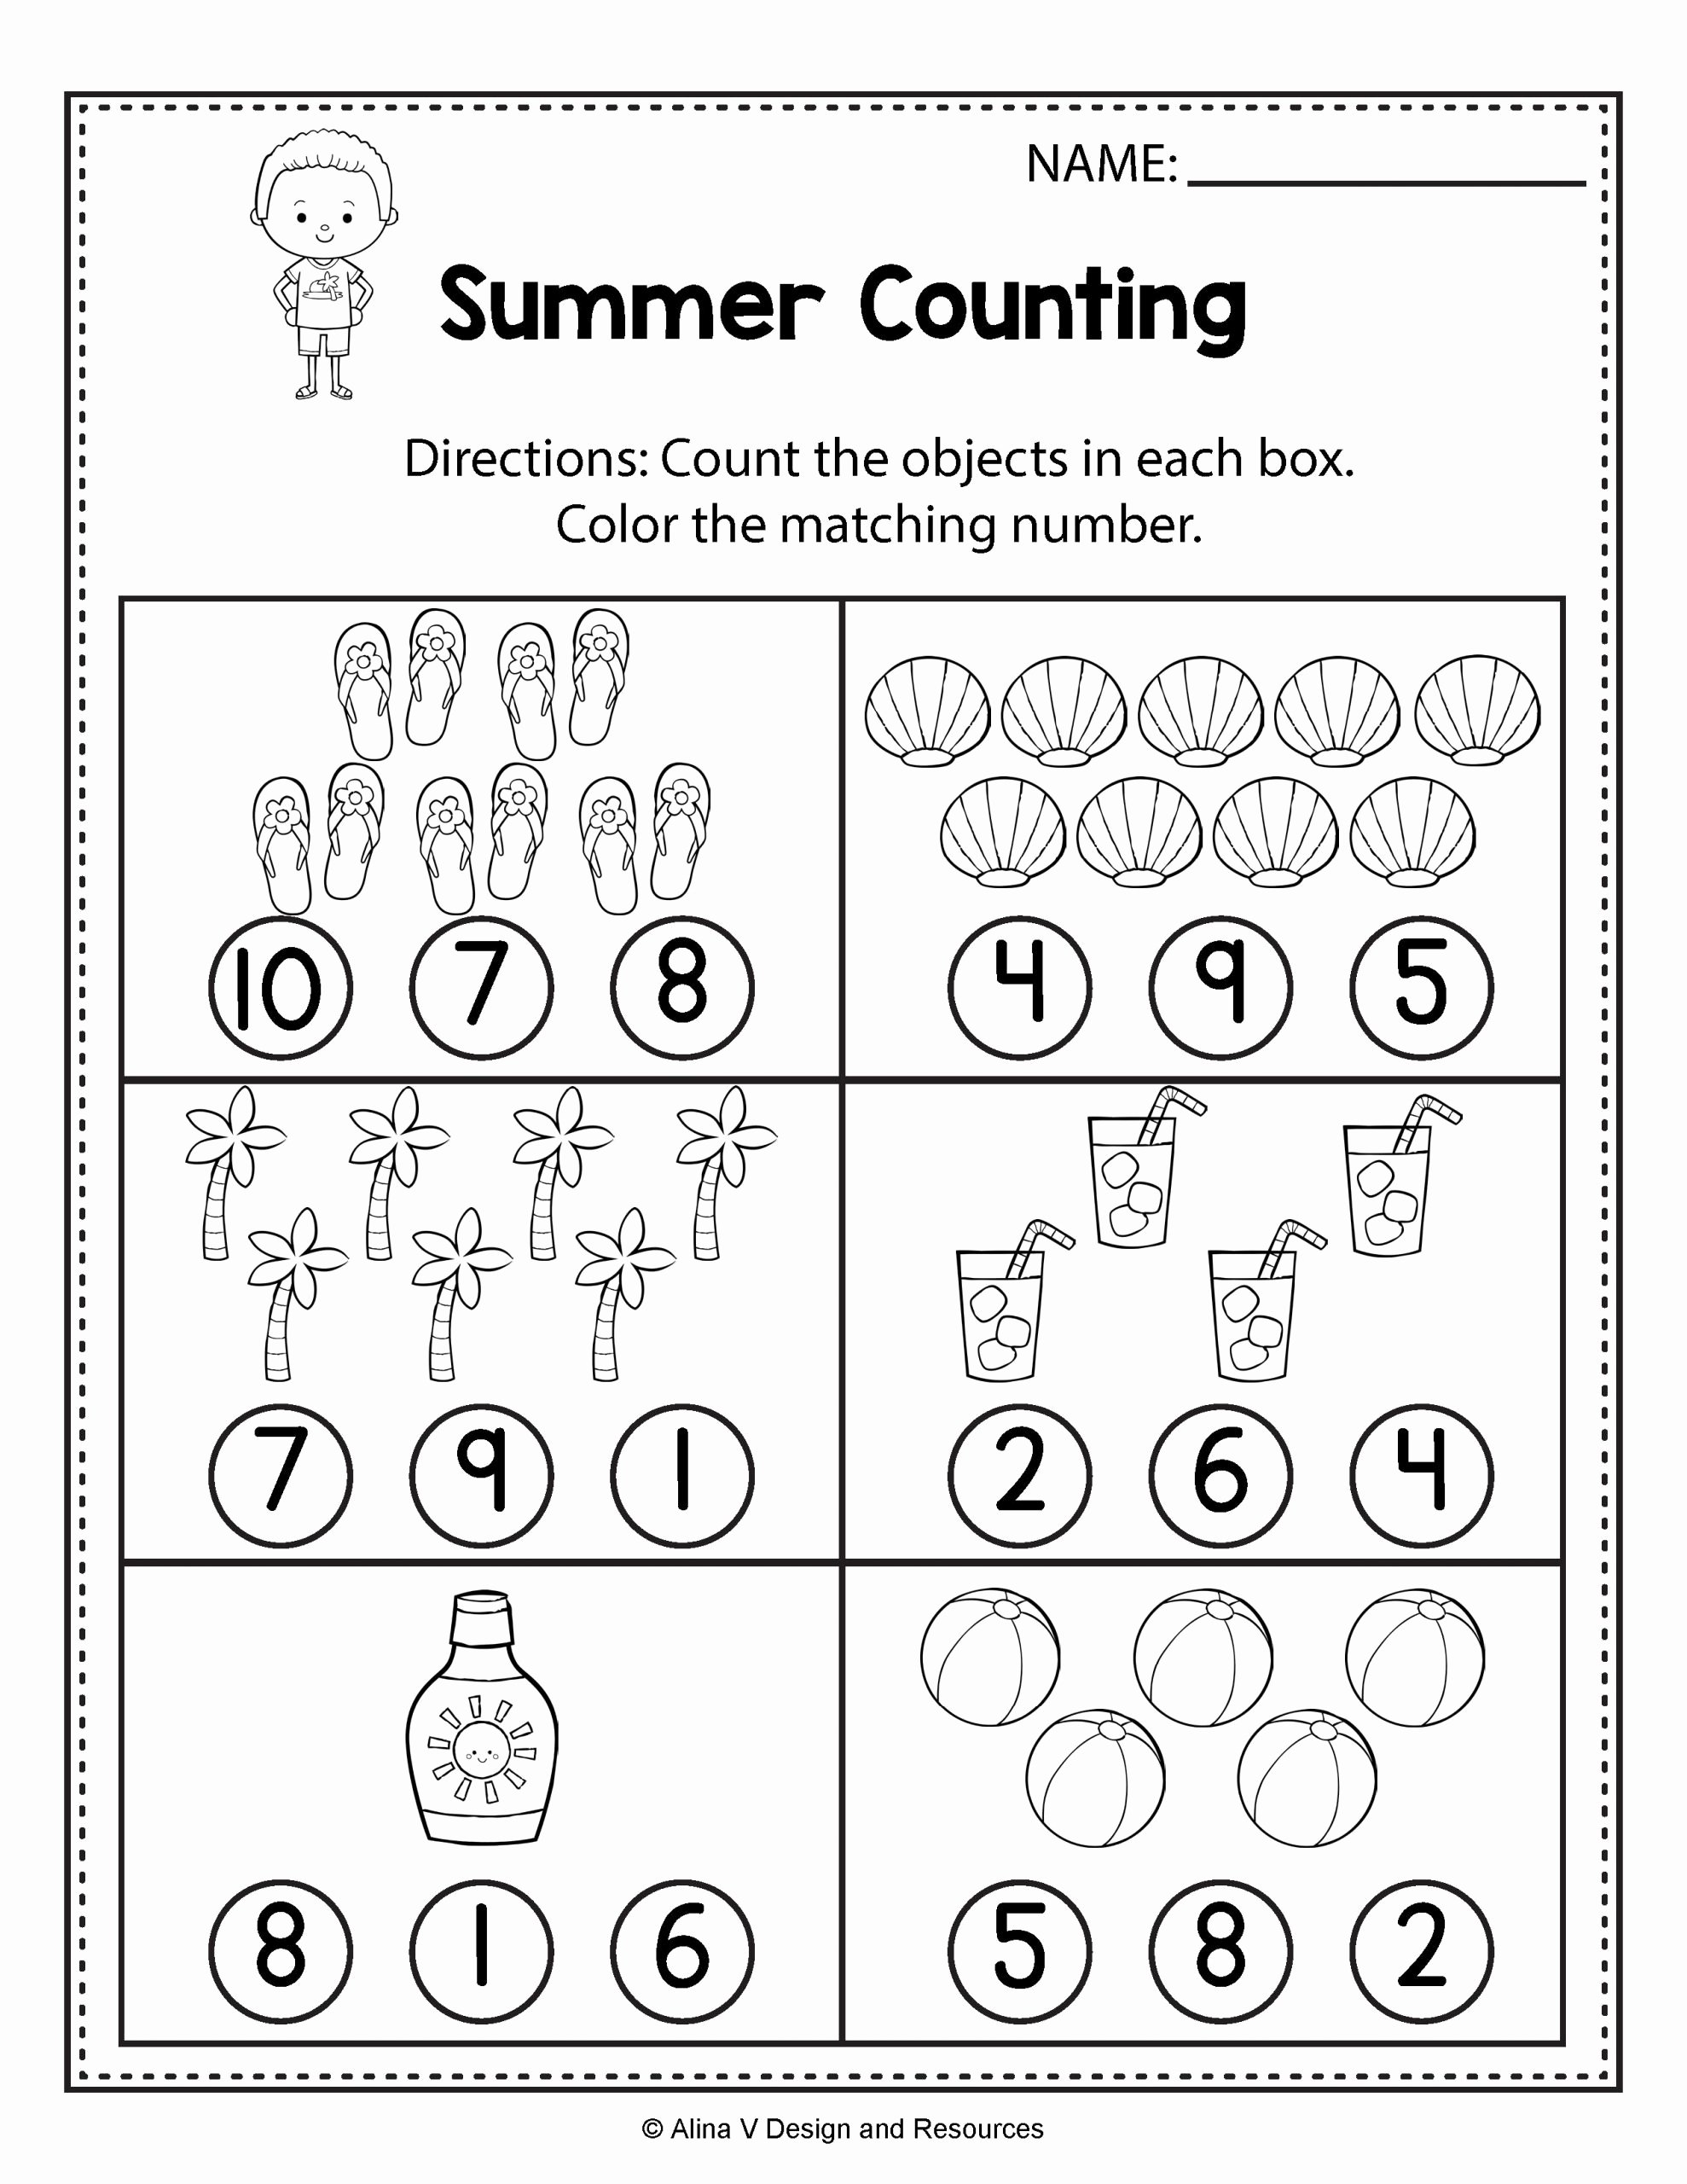 Printable Number Worksheets for Preschoolers Printable Worksheets Math Worksheet Number Worksheets for Preschool